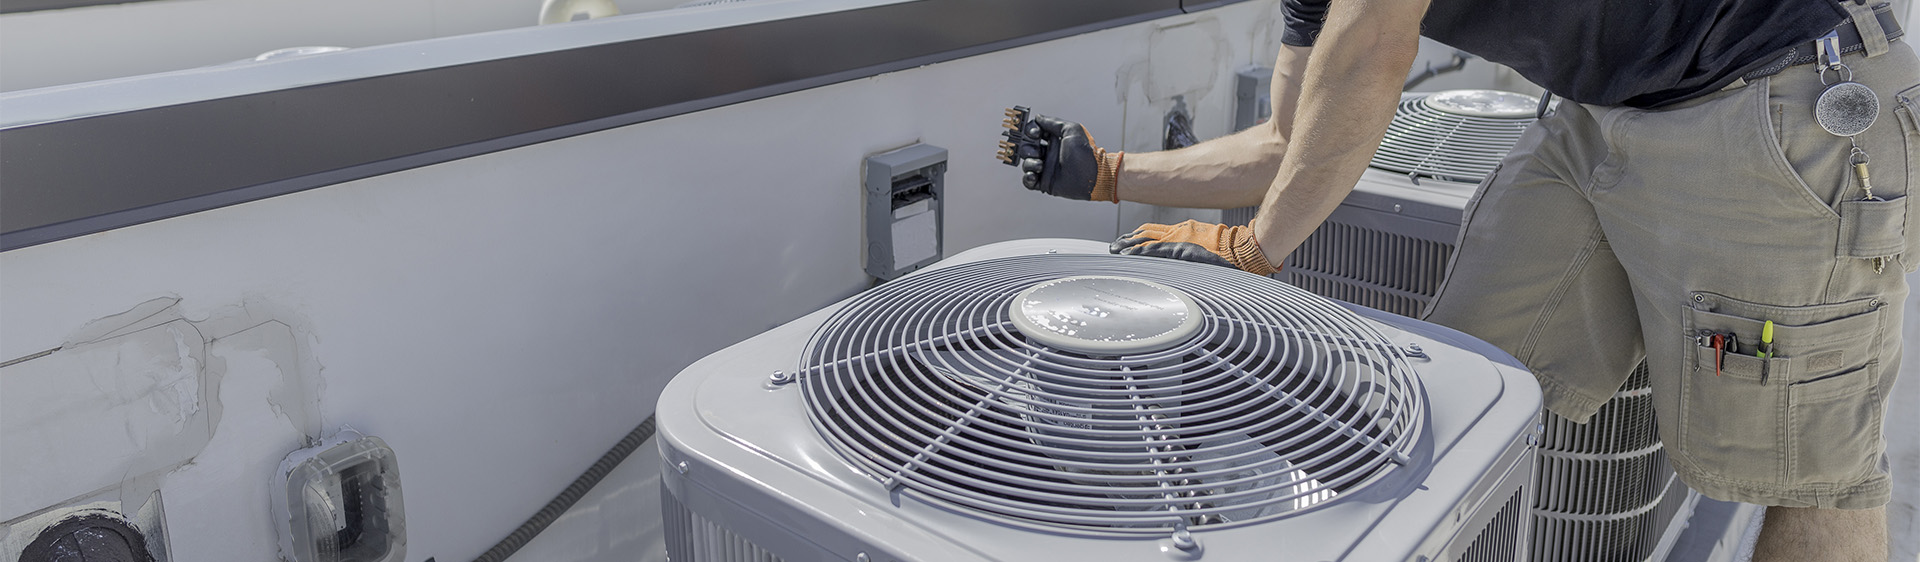 Livonia HVAC Company, HVAC Contractor and Air Conditioning Repair